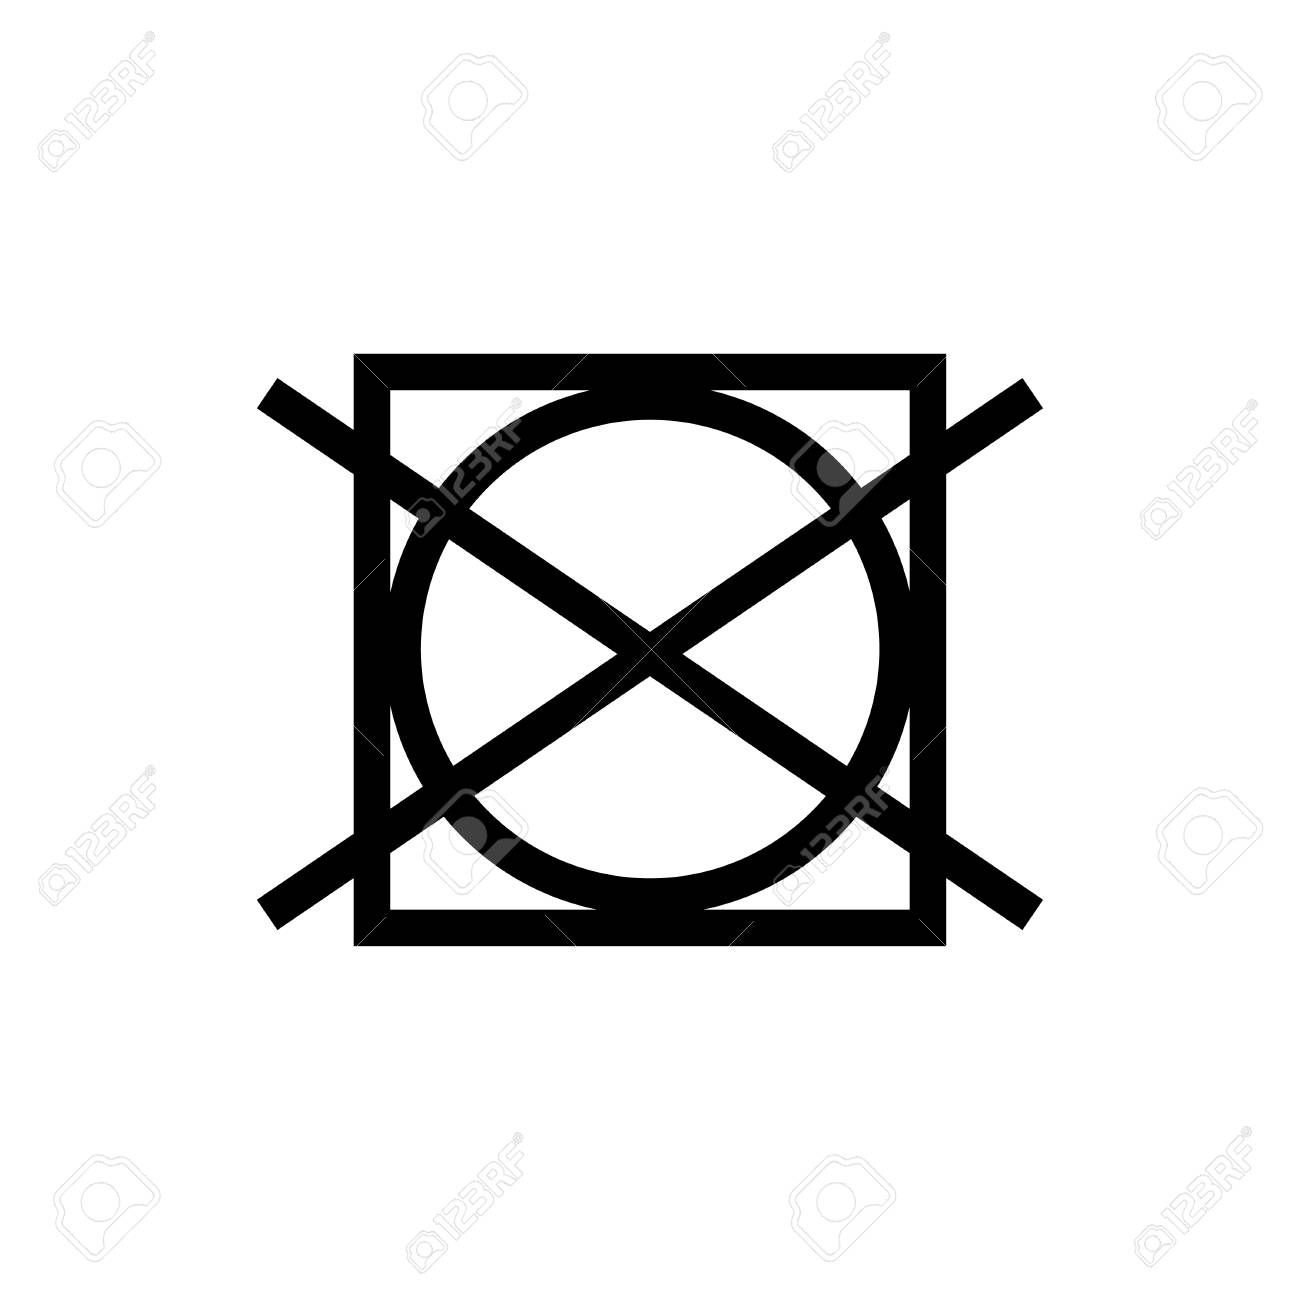 Do Not Wash Symbol Gallery Meaning Of This Symbol